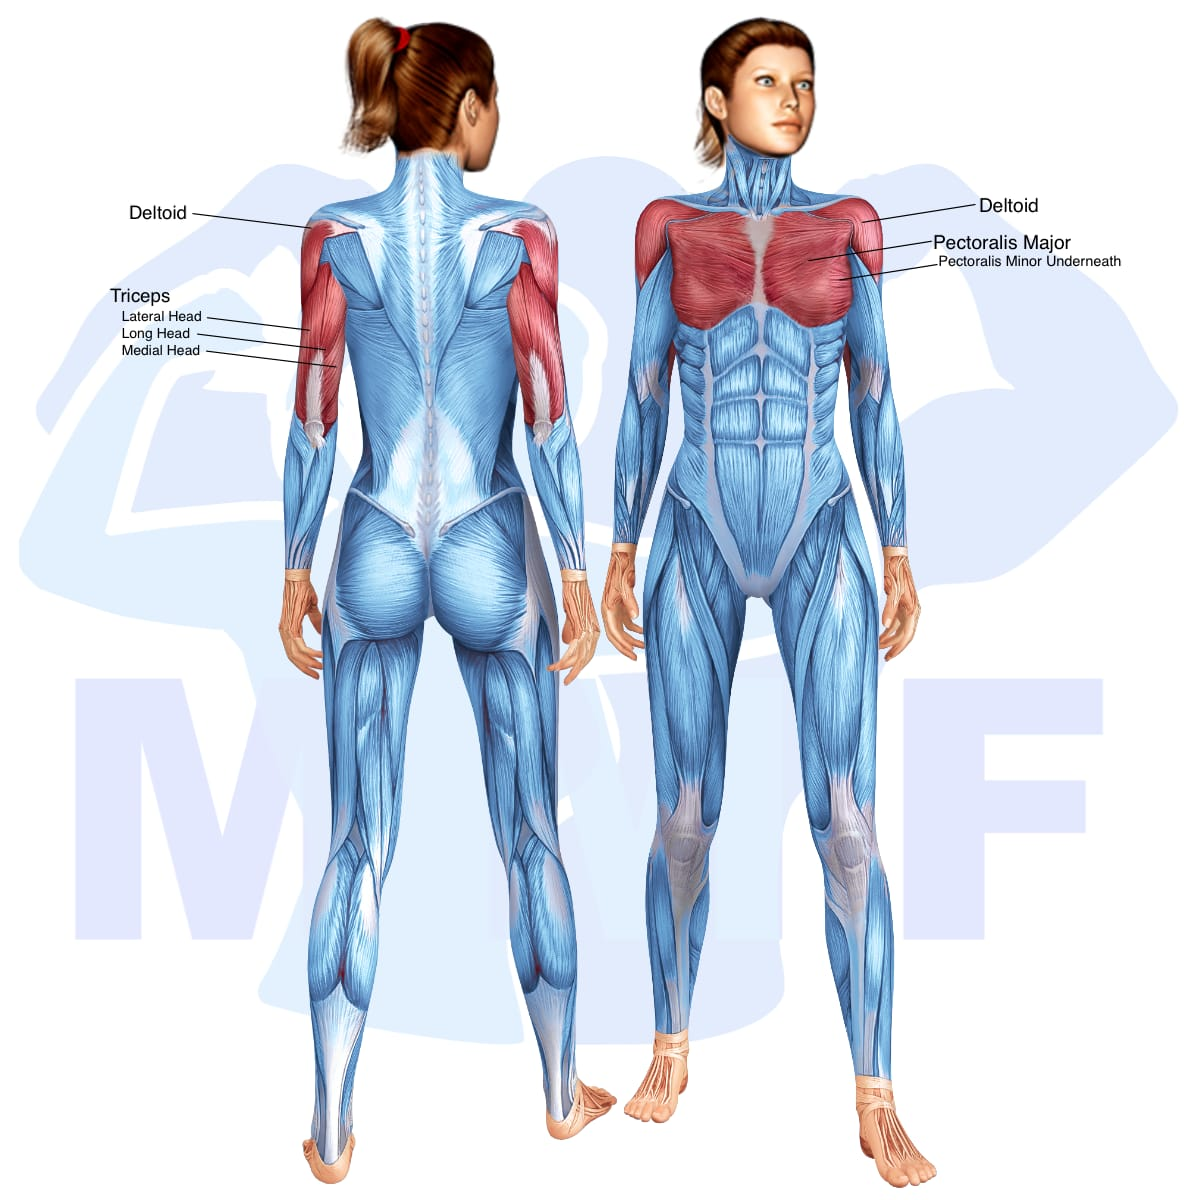 Skeletal muscle systems for a muscular woman, with muscles highlighted in red that are use during resistance band incline press.